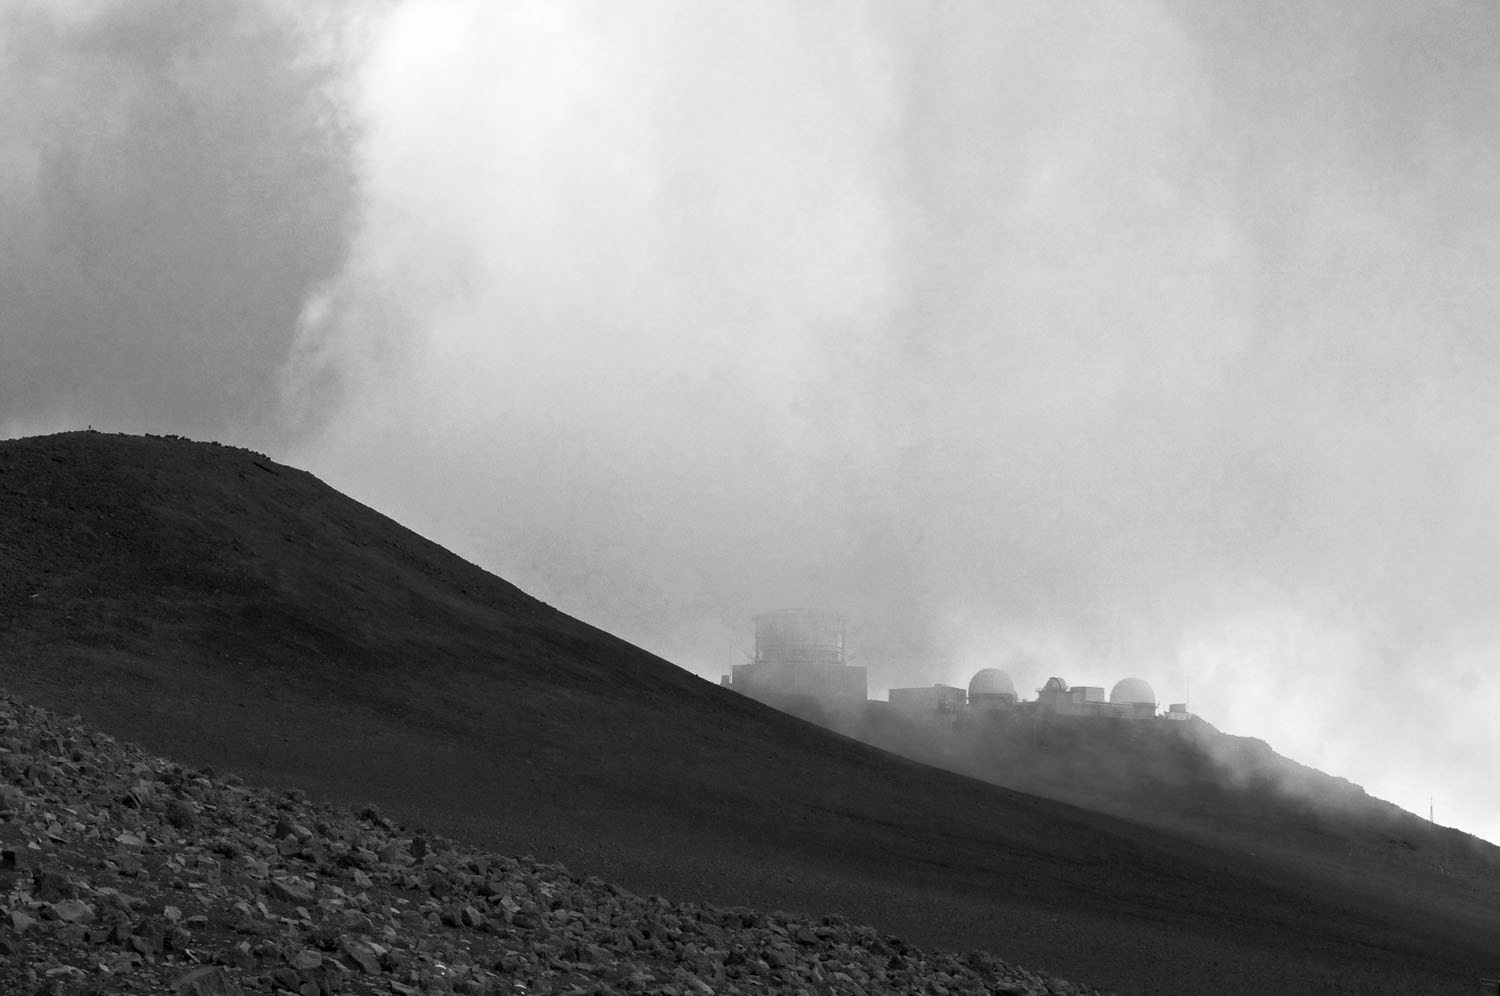 Maui, Haleakala National Park, observatory, Alina Oswald, black and white photography, black and white